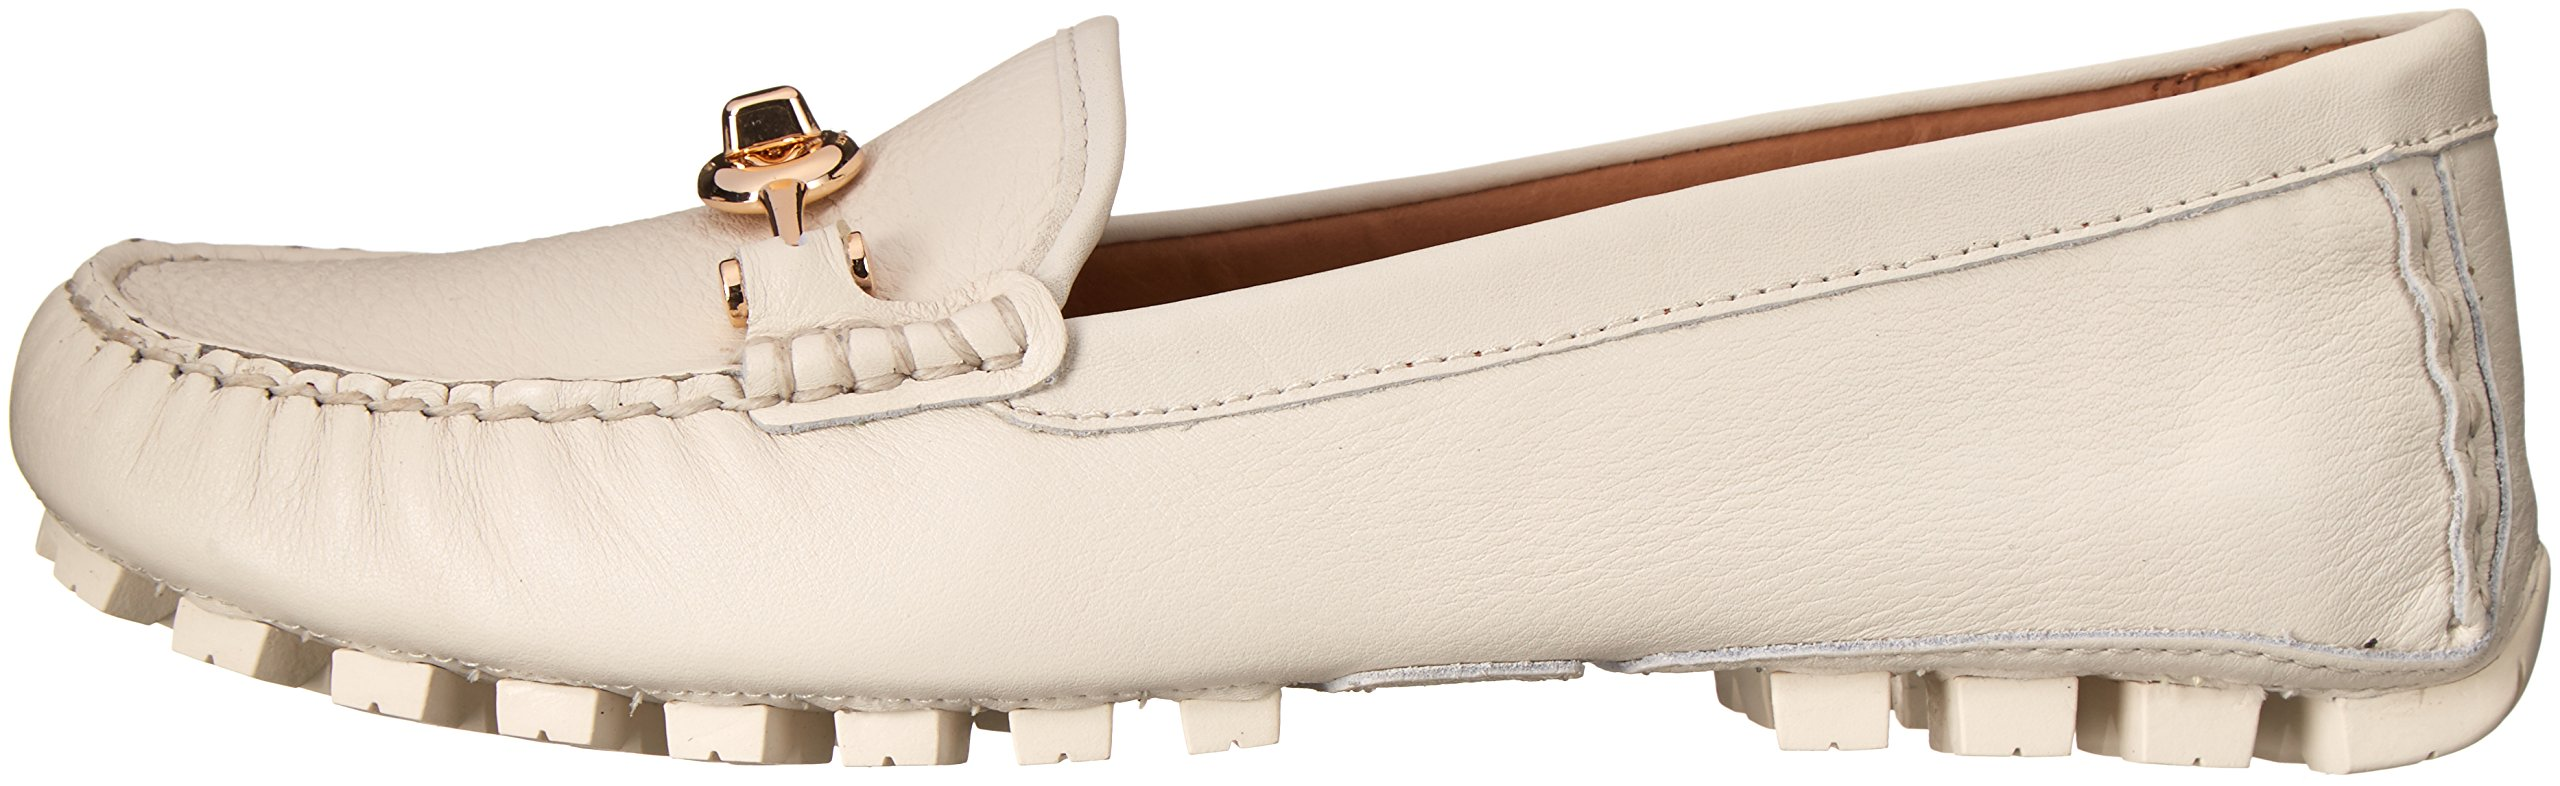 COACH Women's Arlene Chalk Pebble Grain Leather Flat by Coach (Image #5)